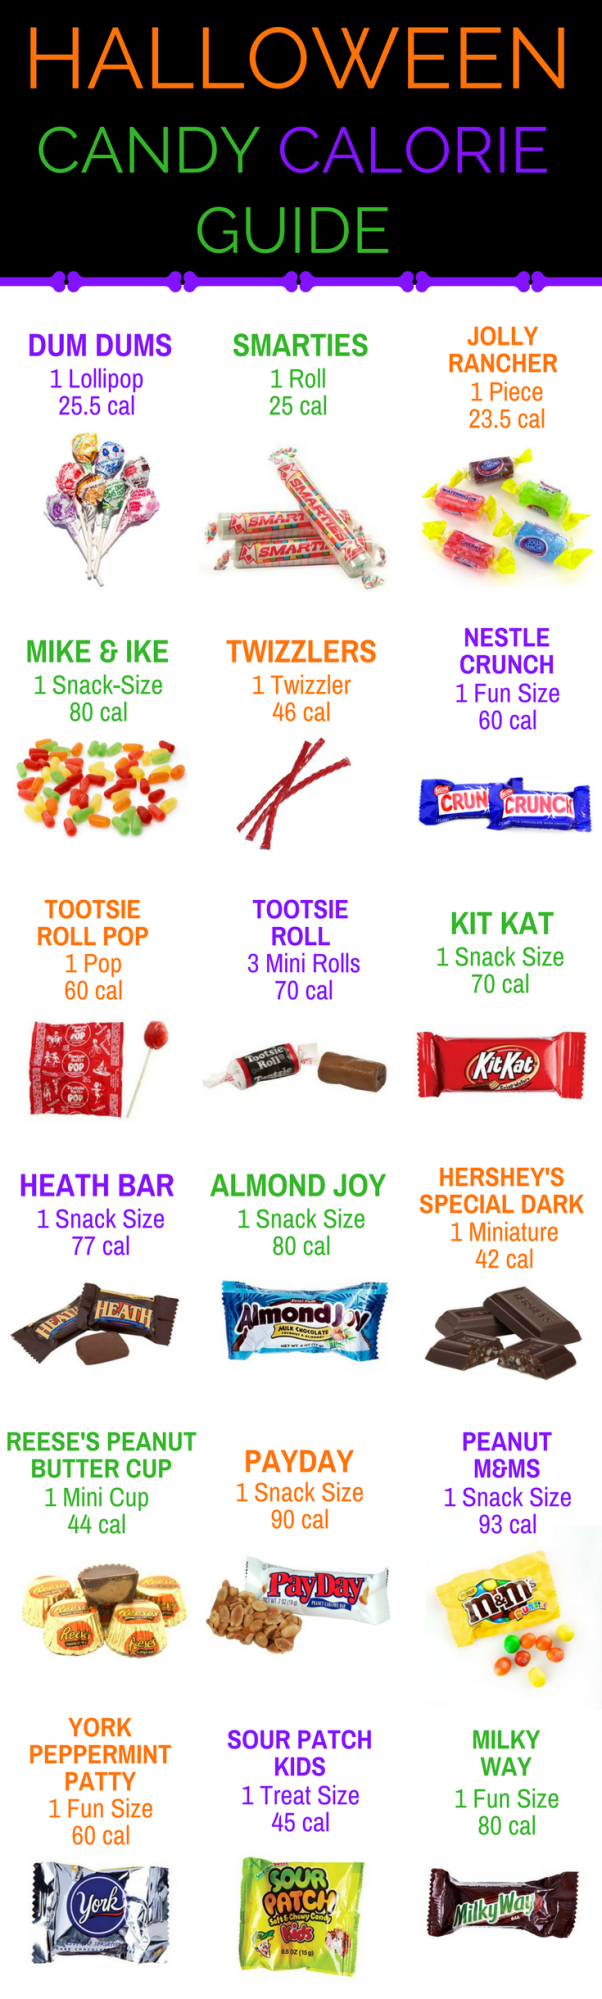 mini almond joy calories